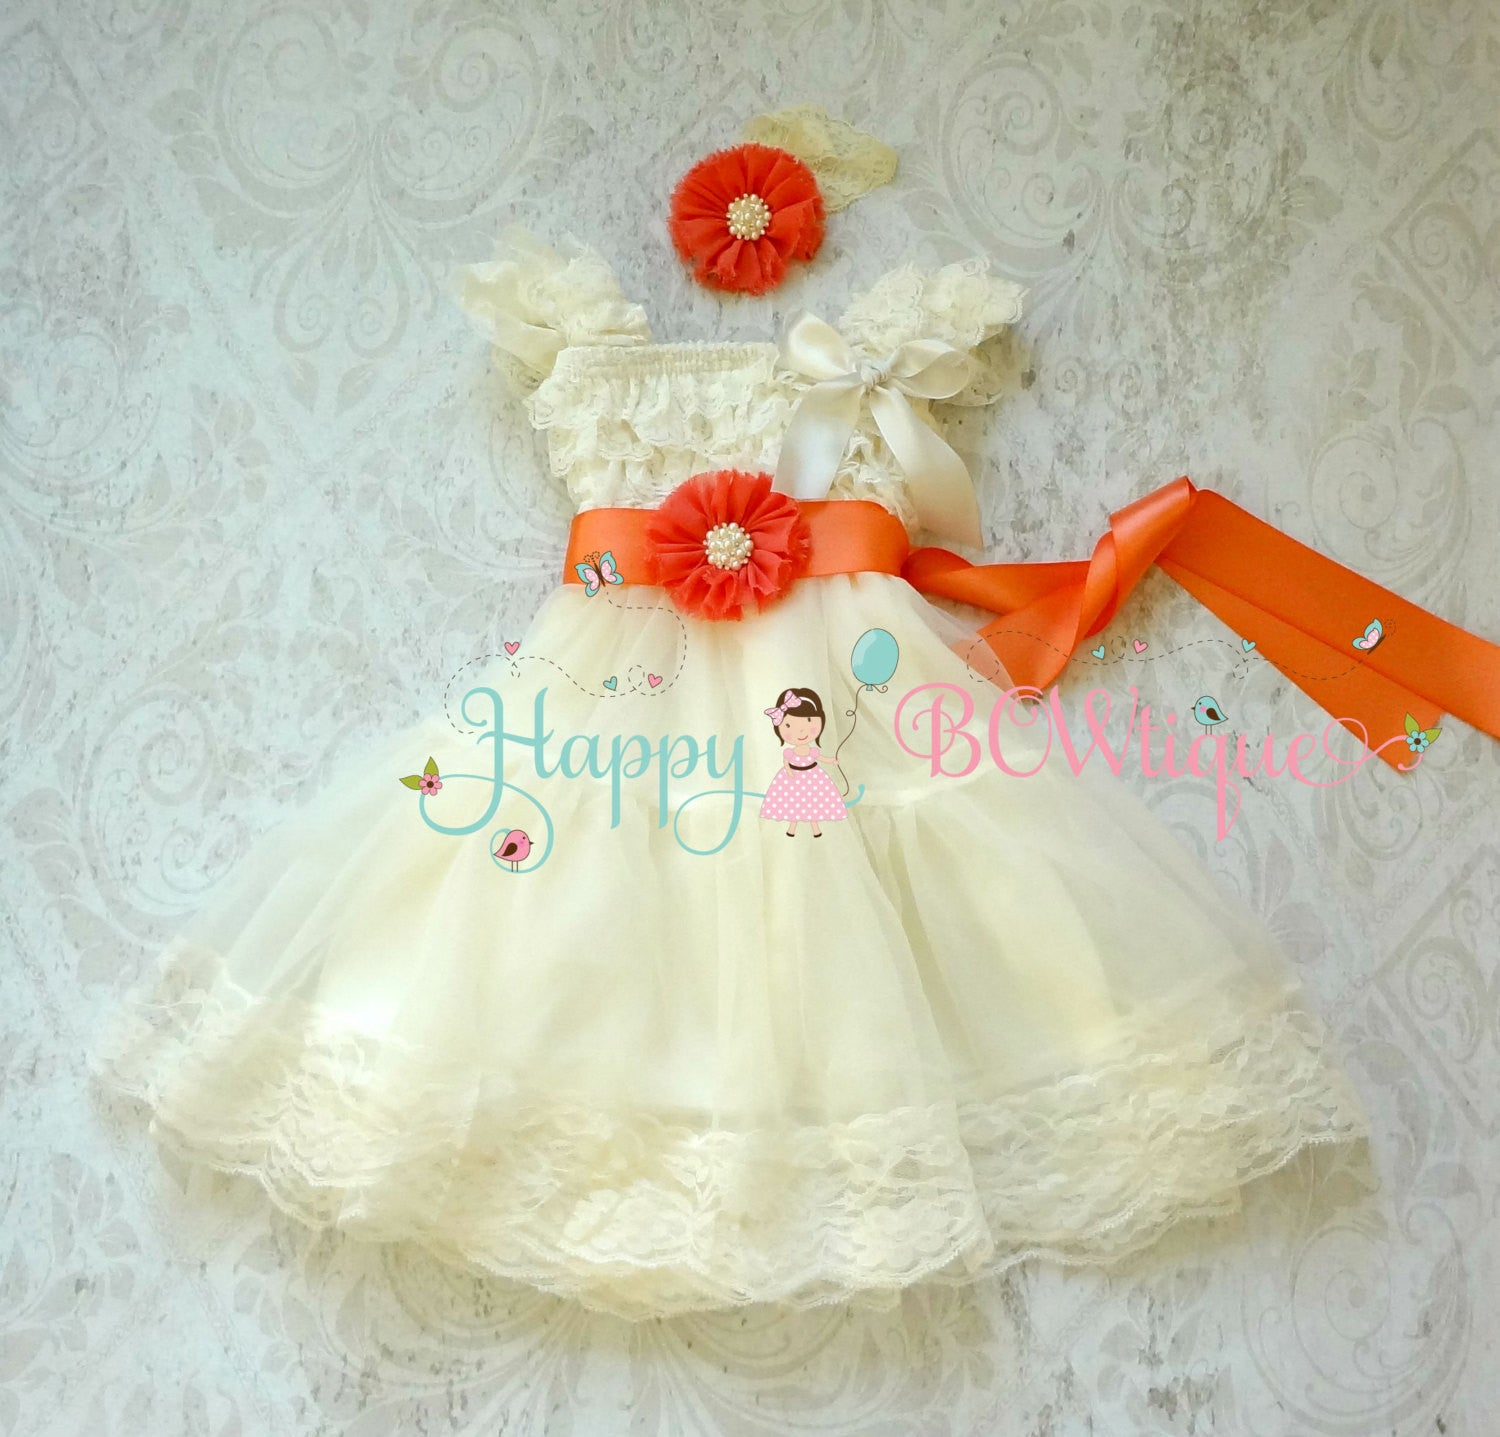 Flower girls dress/ Coral Ivory Chiffon Lace Dress set - Happy BOWtique - children's clothing, Baby Girl clothing